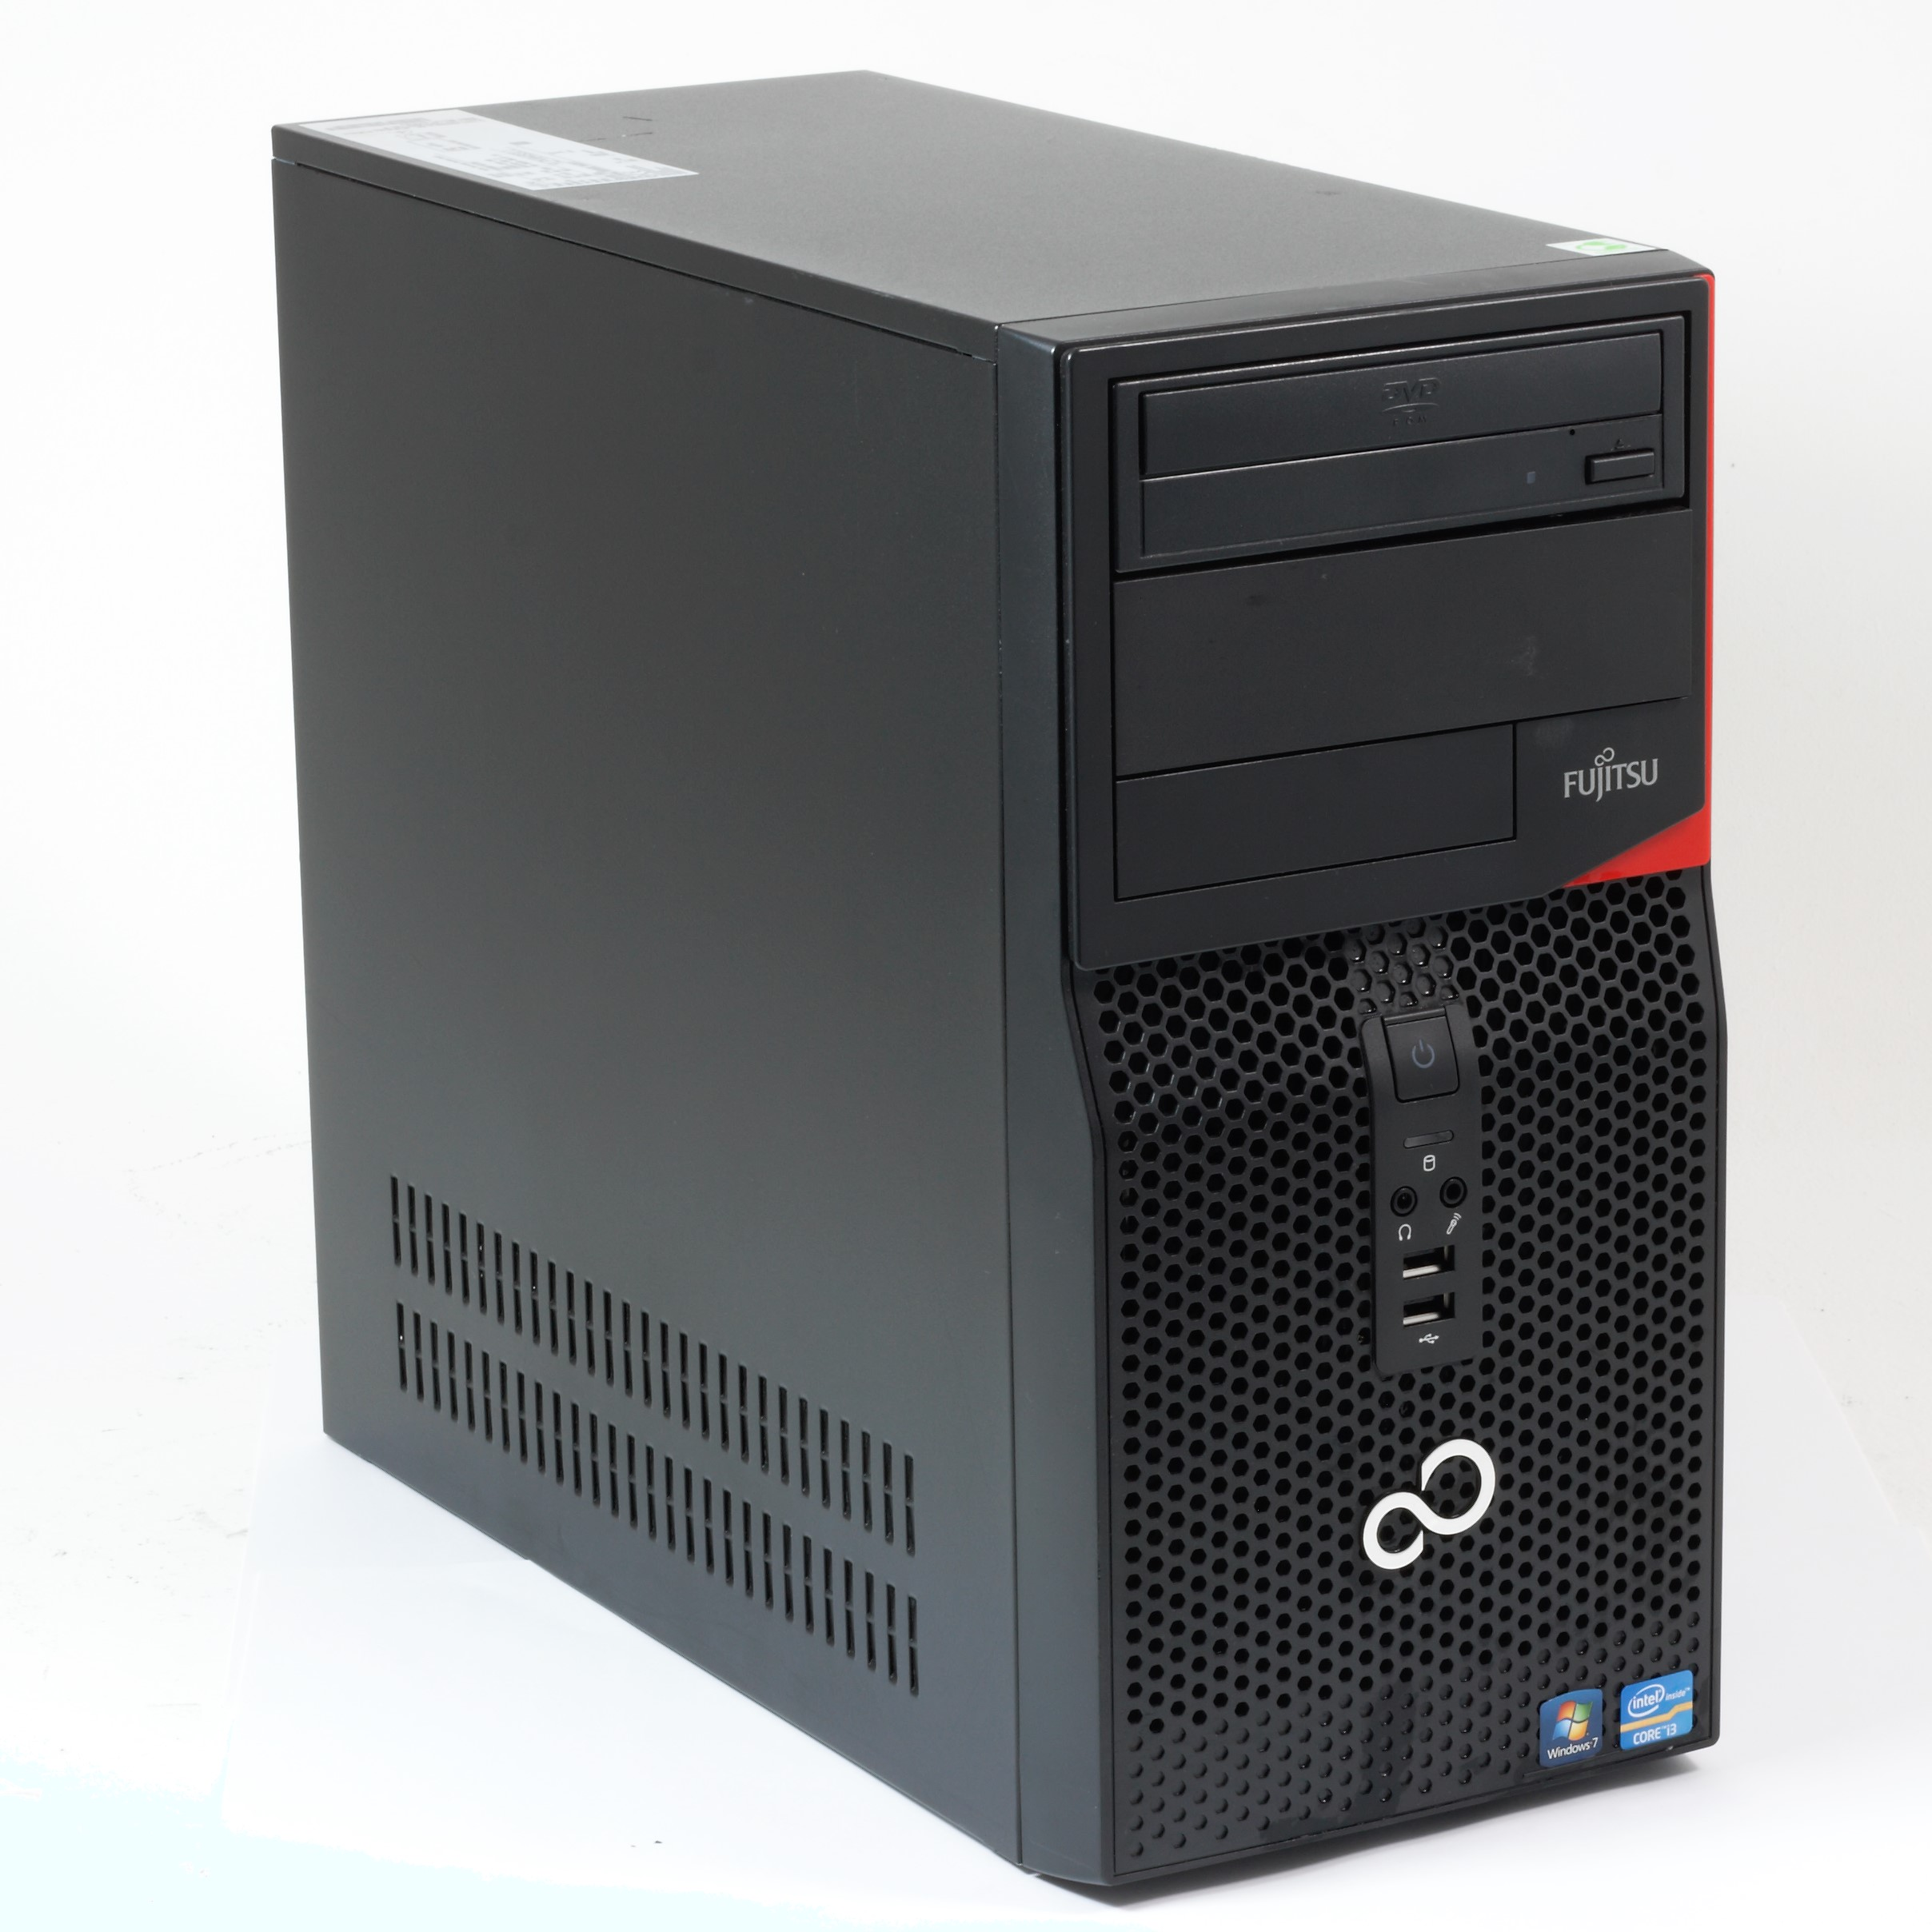 Fujitsu Esprimo P410 Minitower PC Core i3 3220 3,3GHz 500GB HDD 4GB RAM DVD ROM